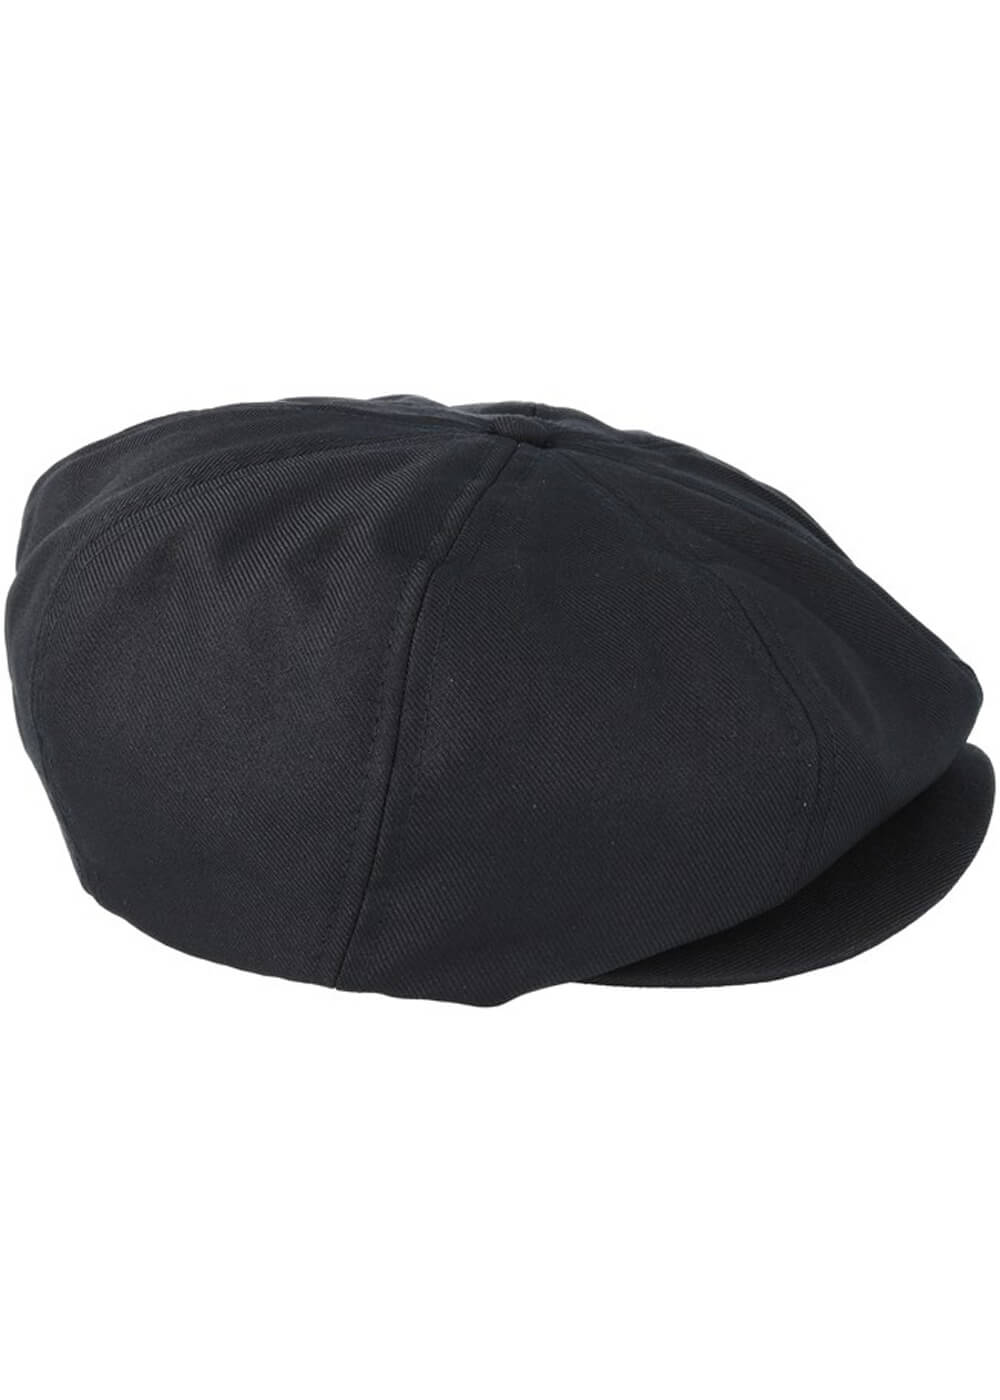 Dickies Mens Jacksonport Flat Cap Black ♥ Shop now at Succubus 610a128f08c9